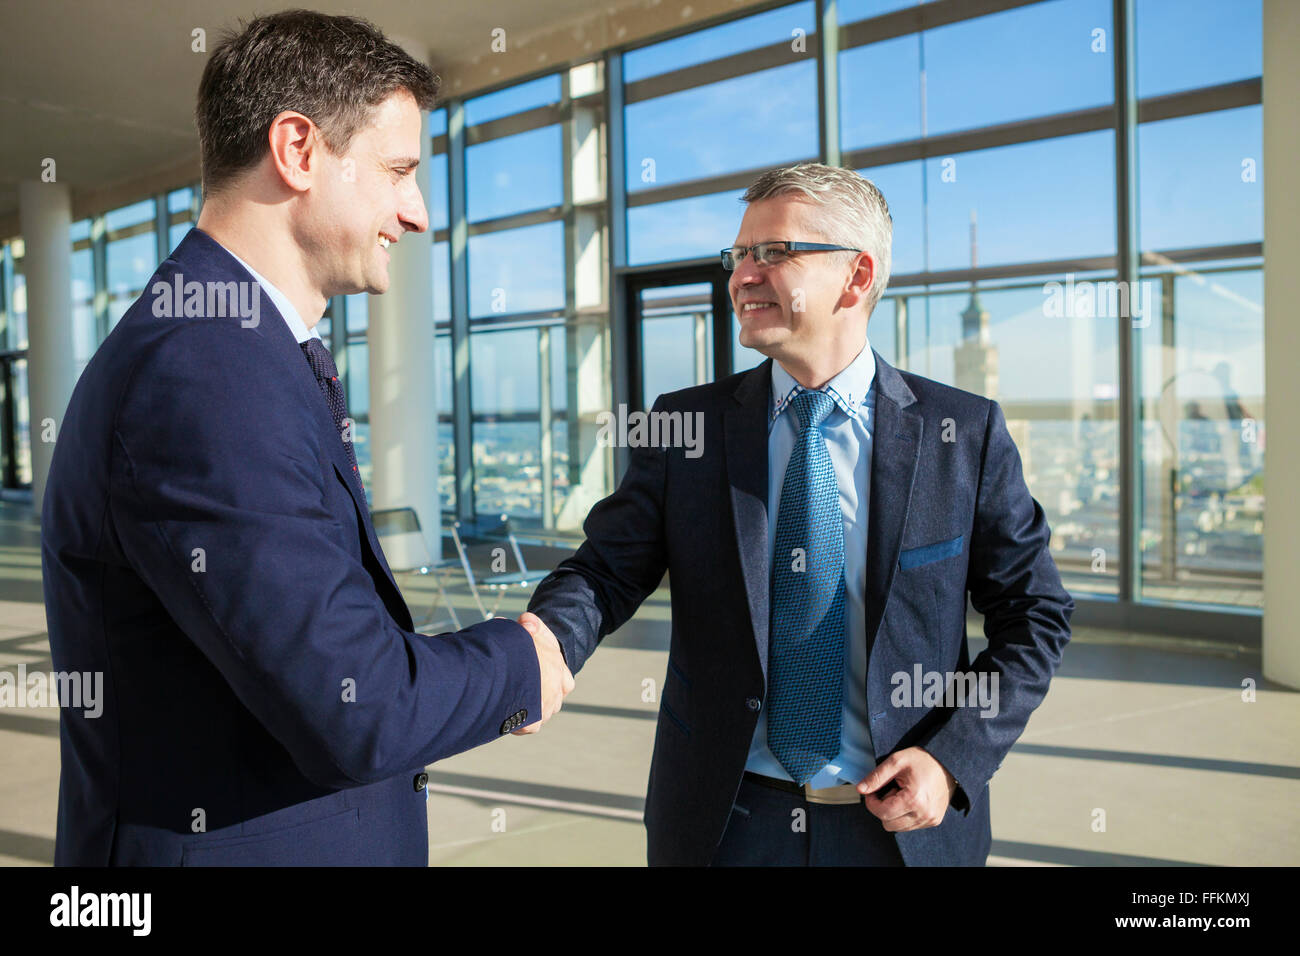 Two businessmen shaking hands in modern office - Stock Image